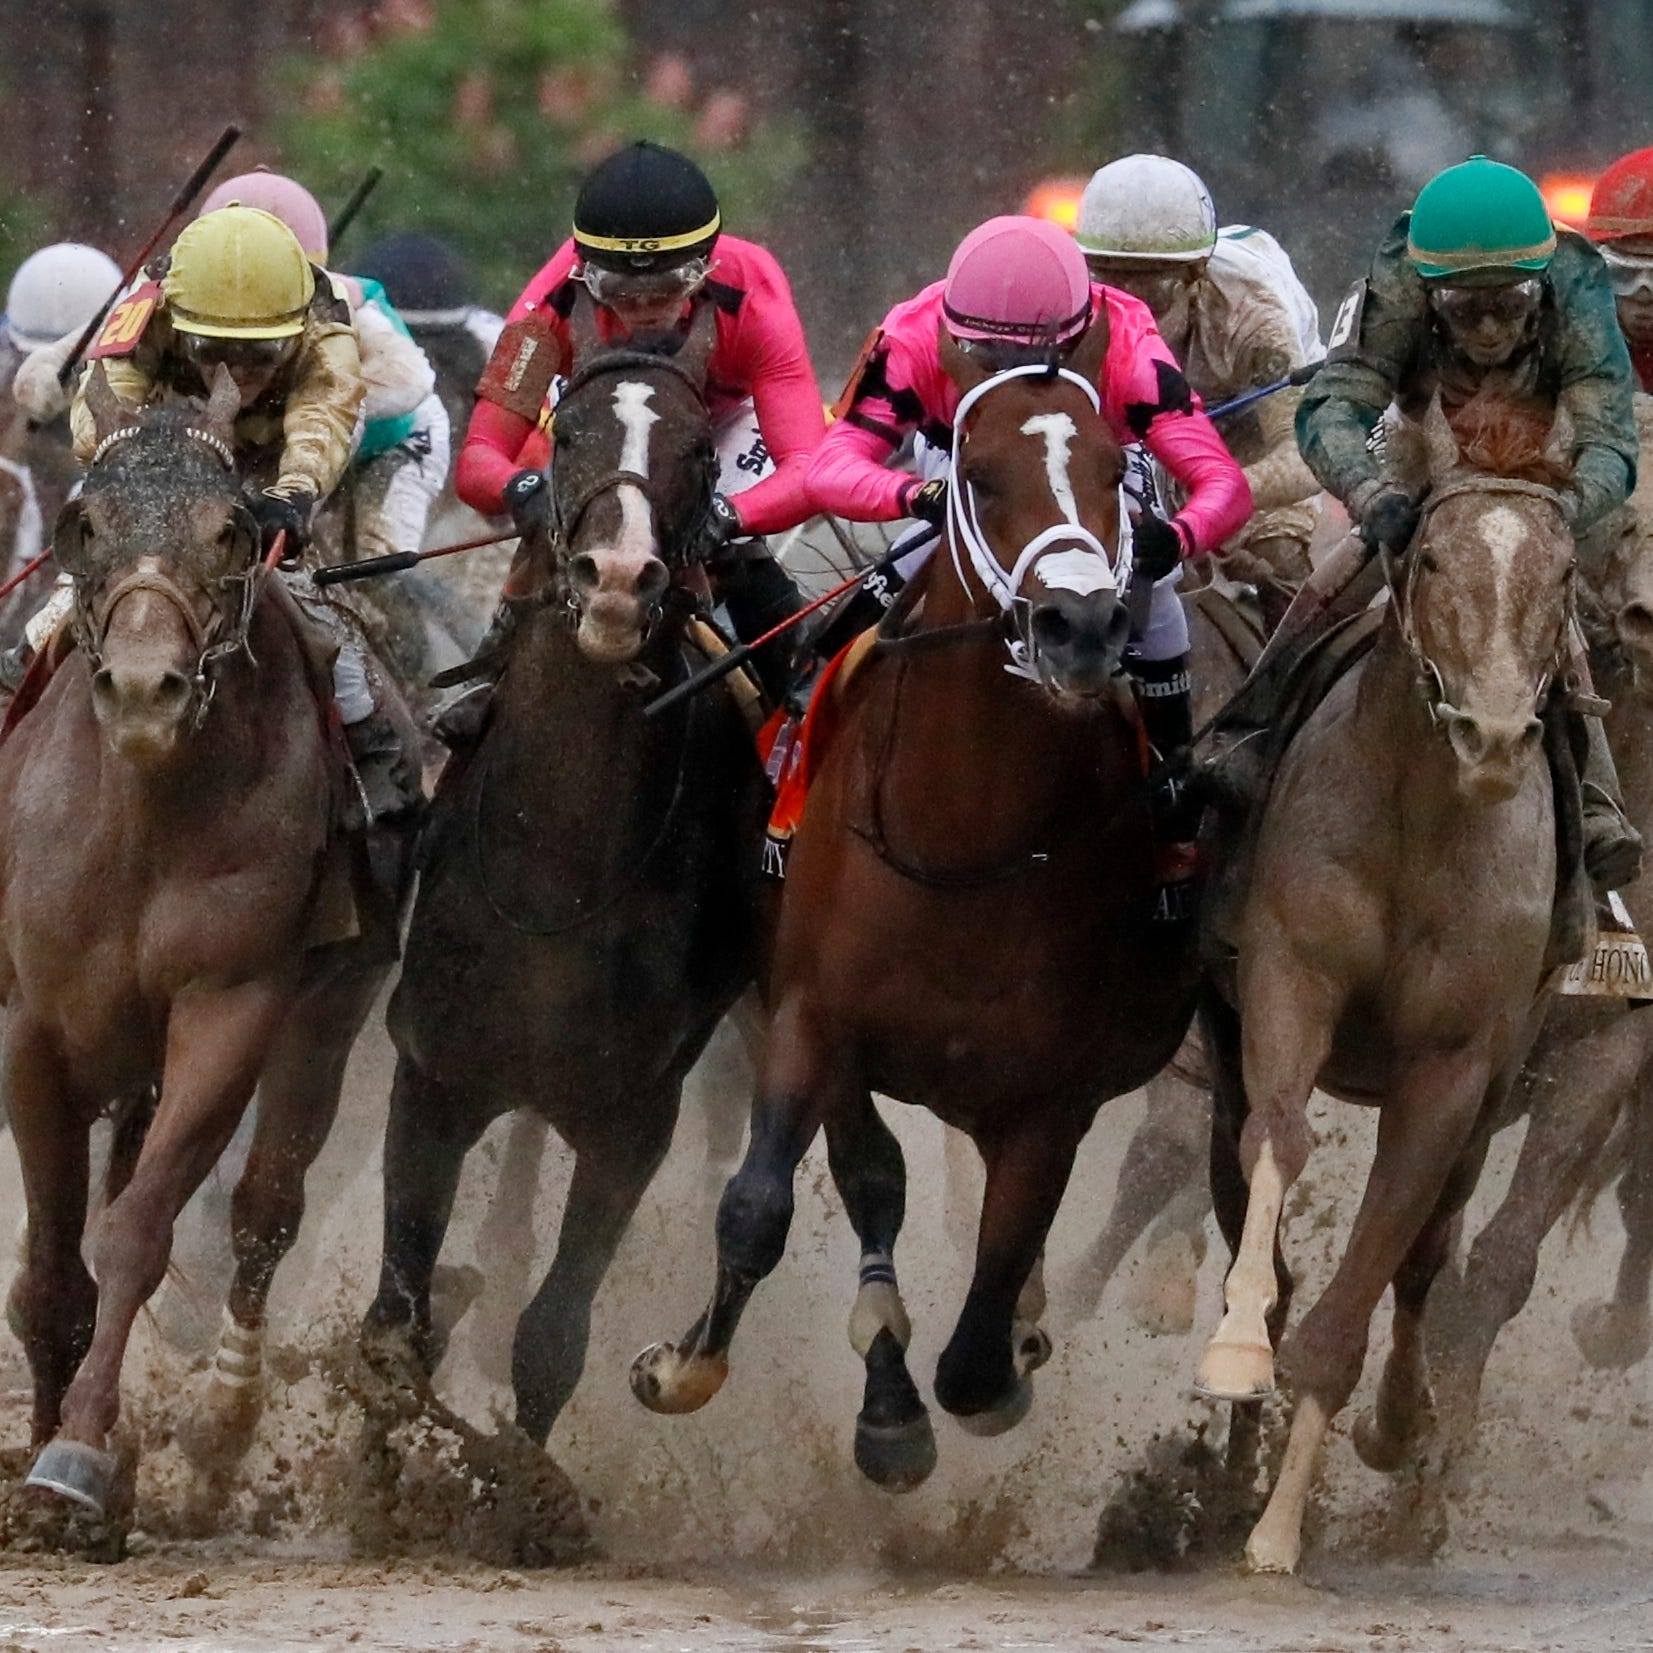 Maximum Security owner offers $20 million challenge to Kentucky Derby owners